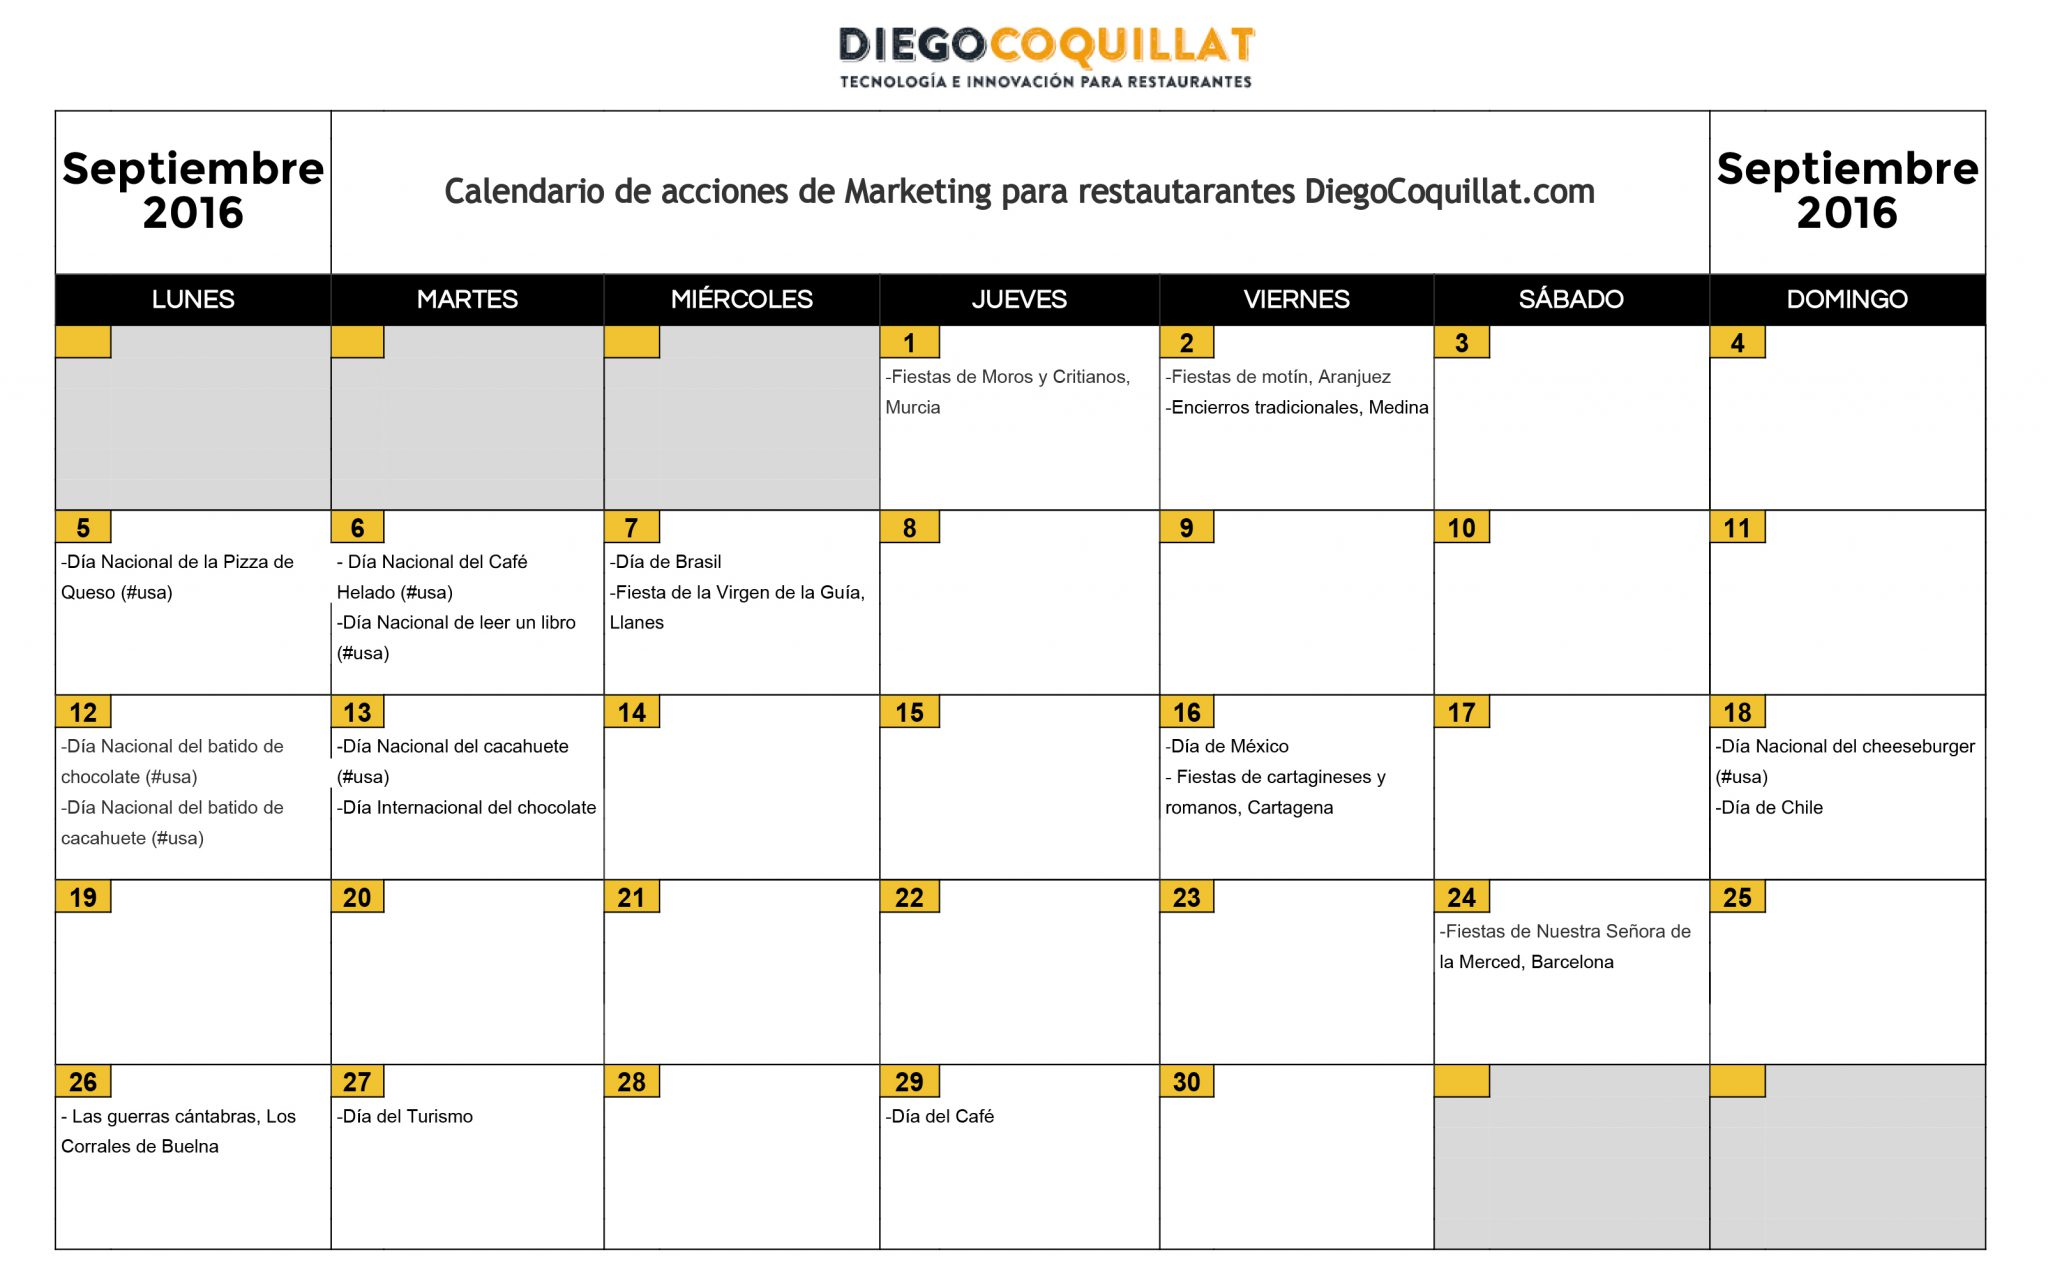 2016 MARKETING ACTIONS TIMETABLE DiegoCoquillat.com - Septiembre2016